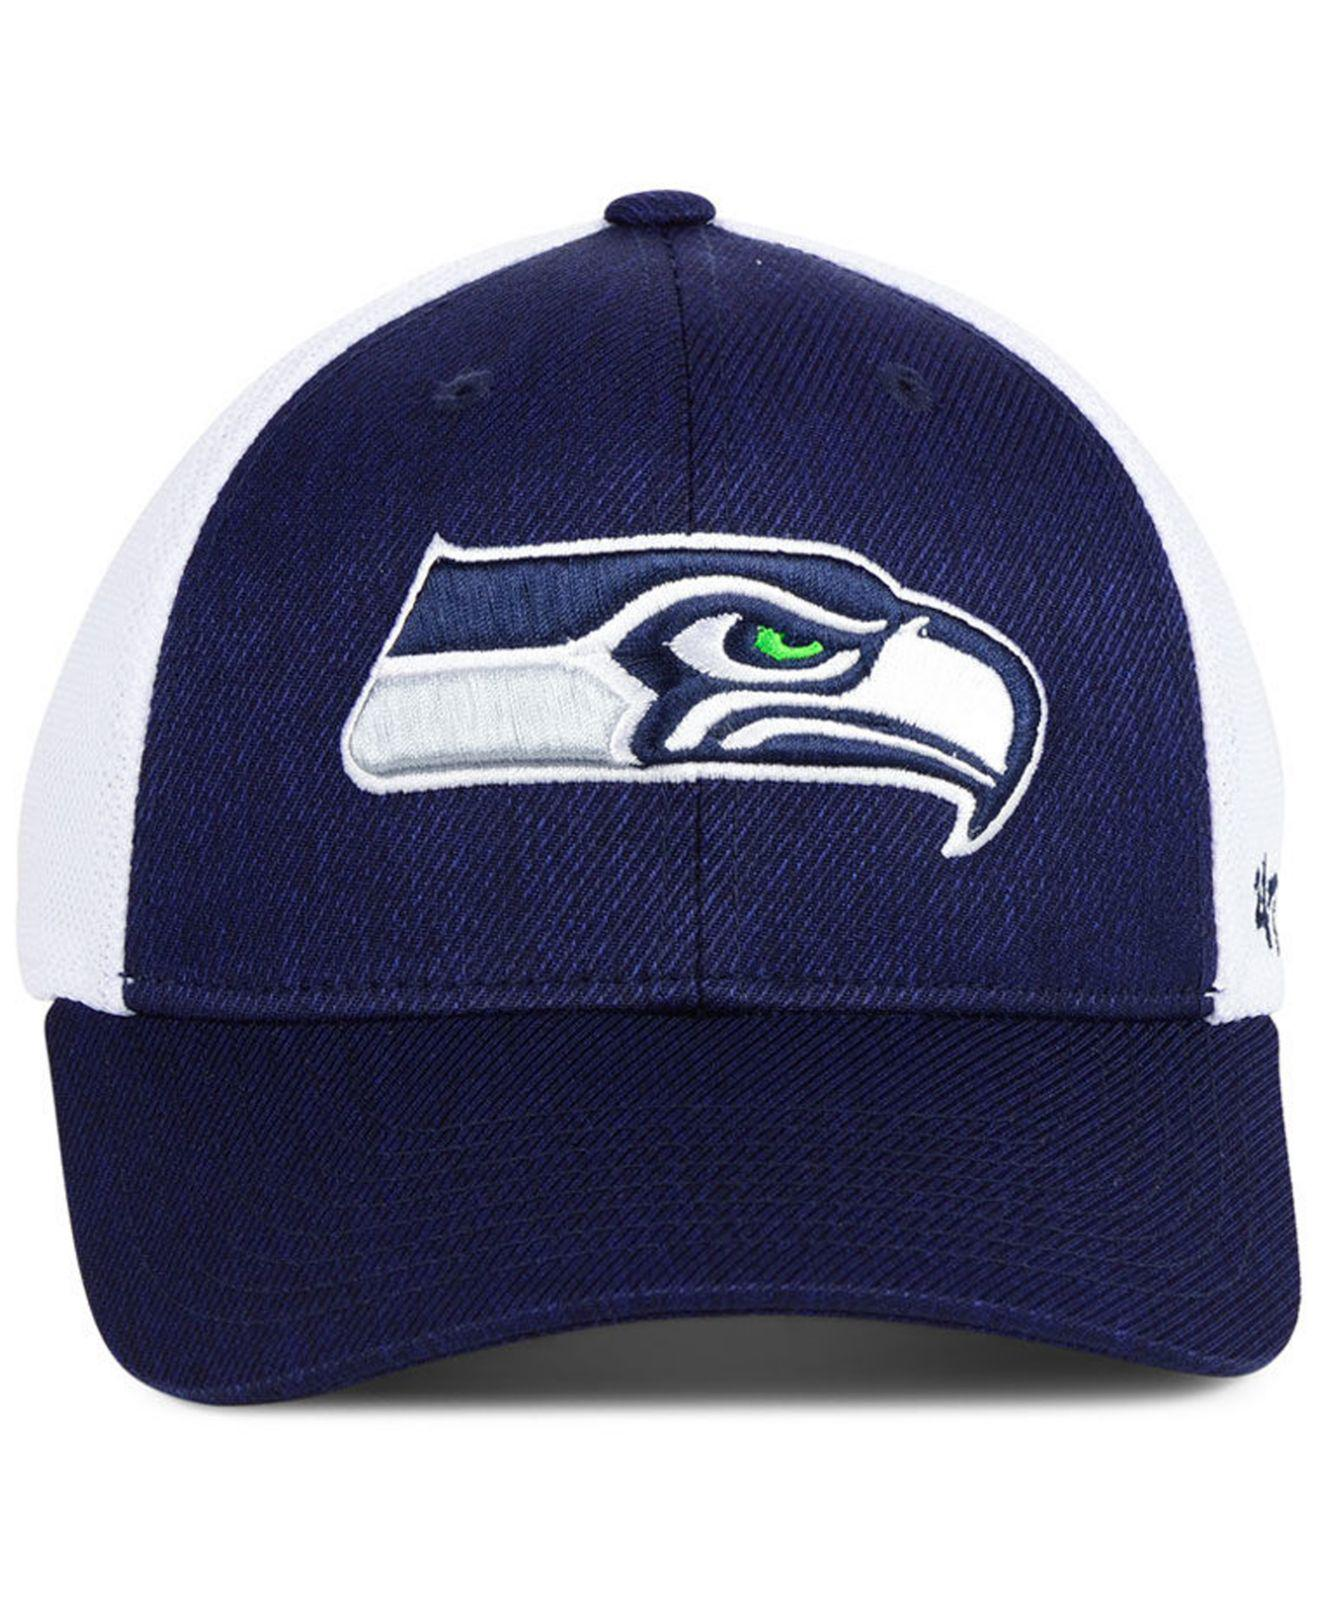 official photos f446a 53da9 Lyst - 47 Brand Seattle Seahawks Hazy Flex Contender Stretch Fitted Cap in  Blue for Men